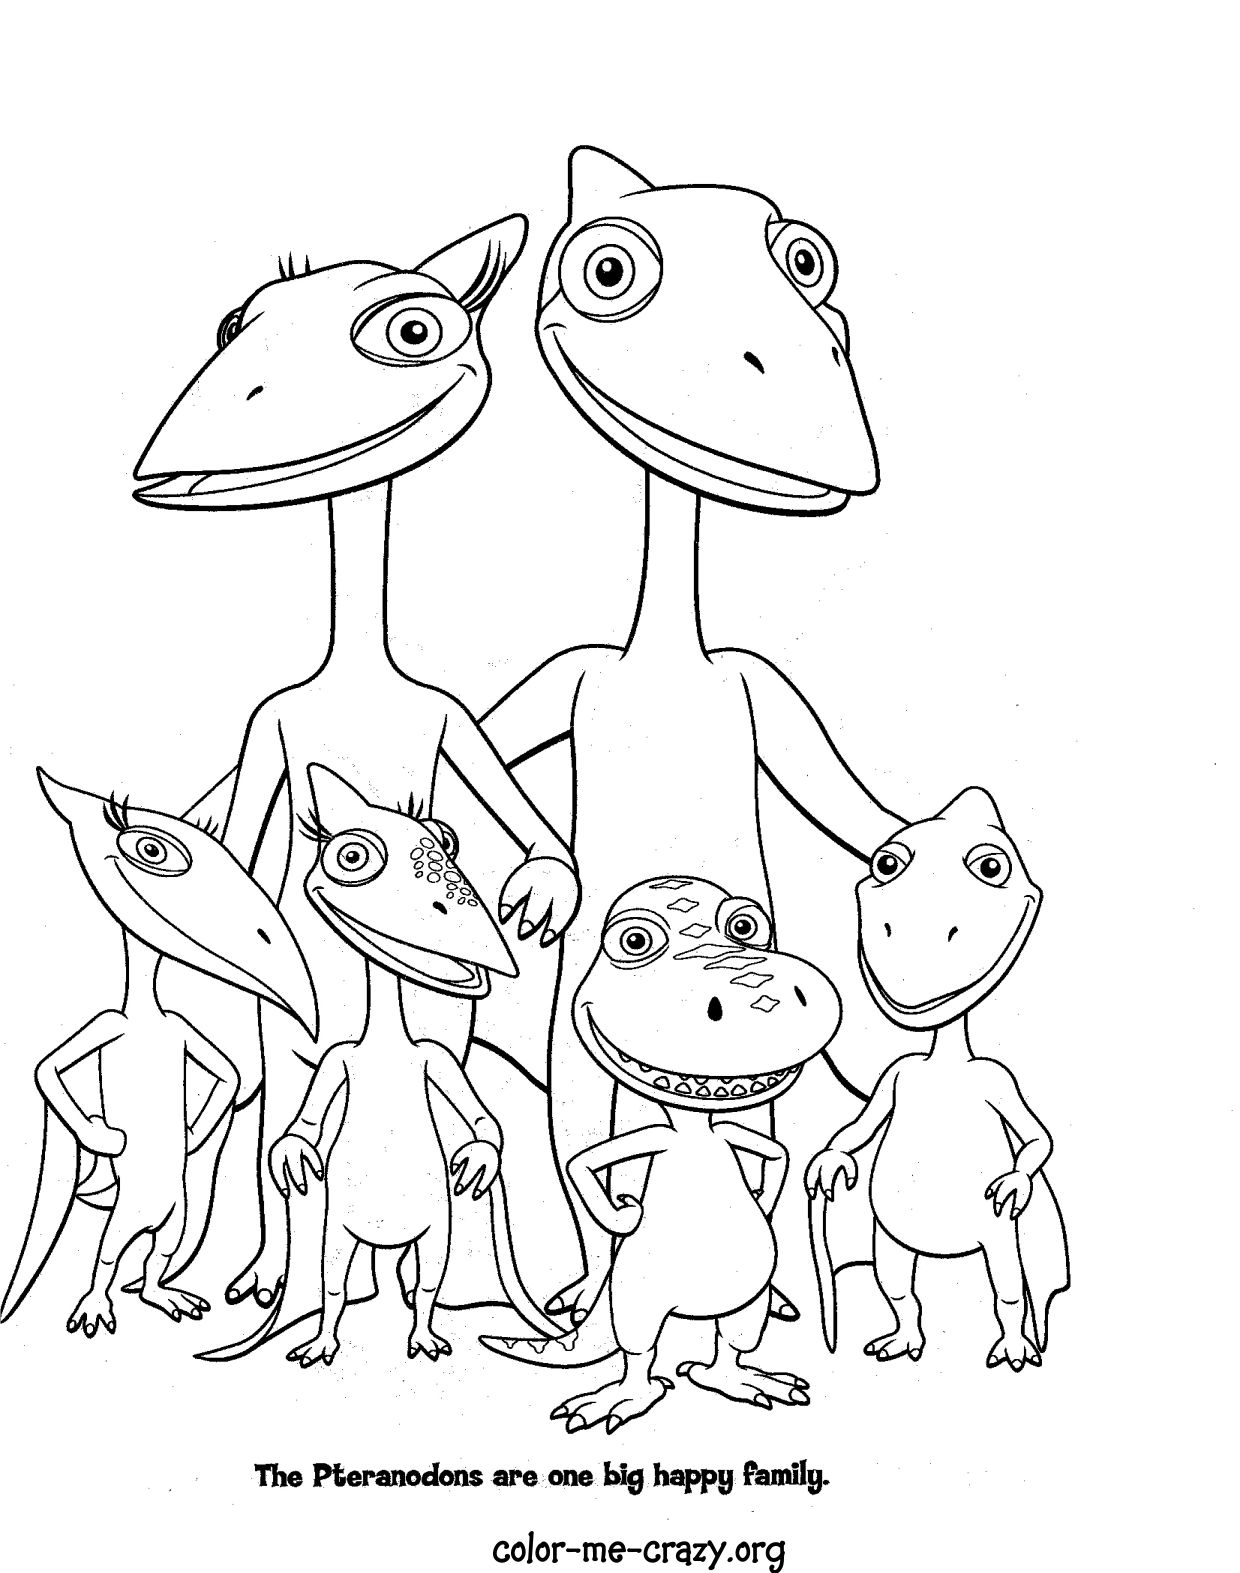 dinosaur coloring pages printable free coloring pages free dinosaur printables free dinosaur dinosaur printable coloring free pages